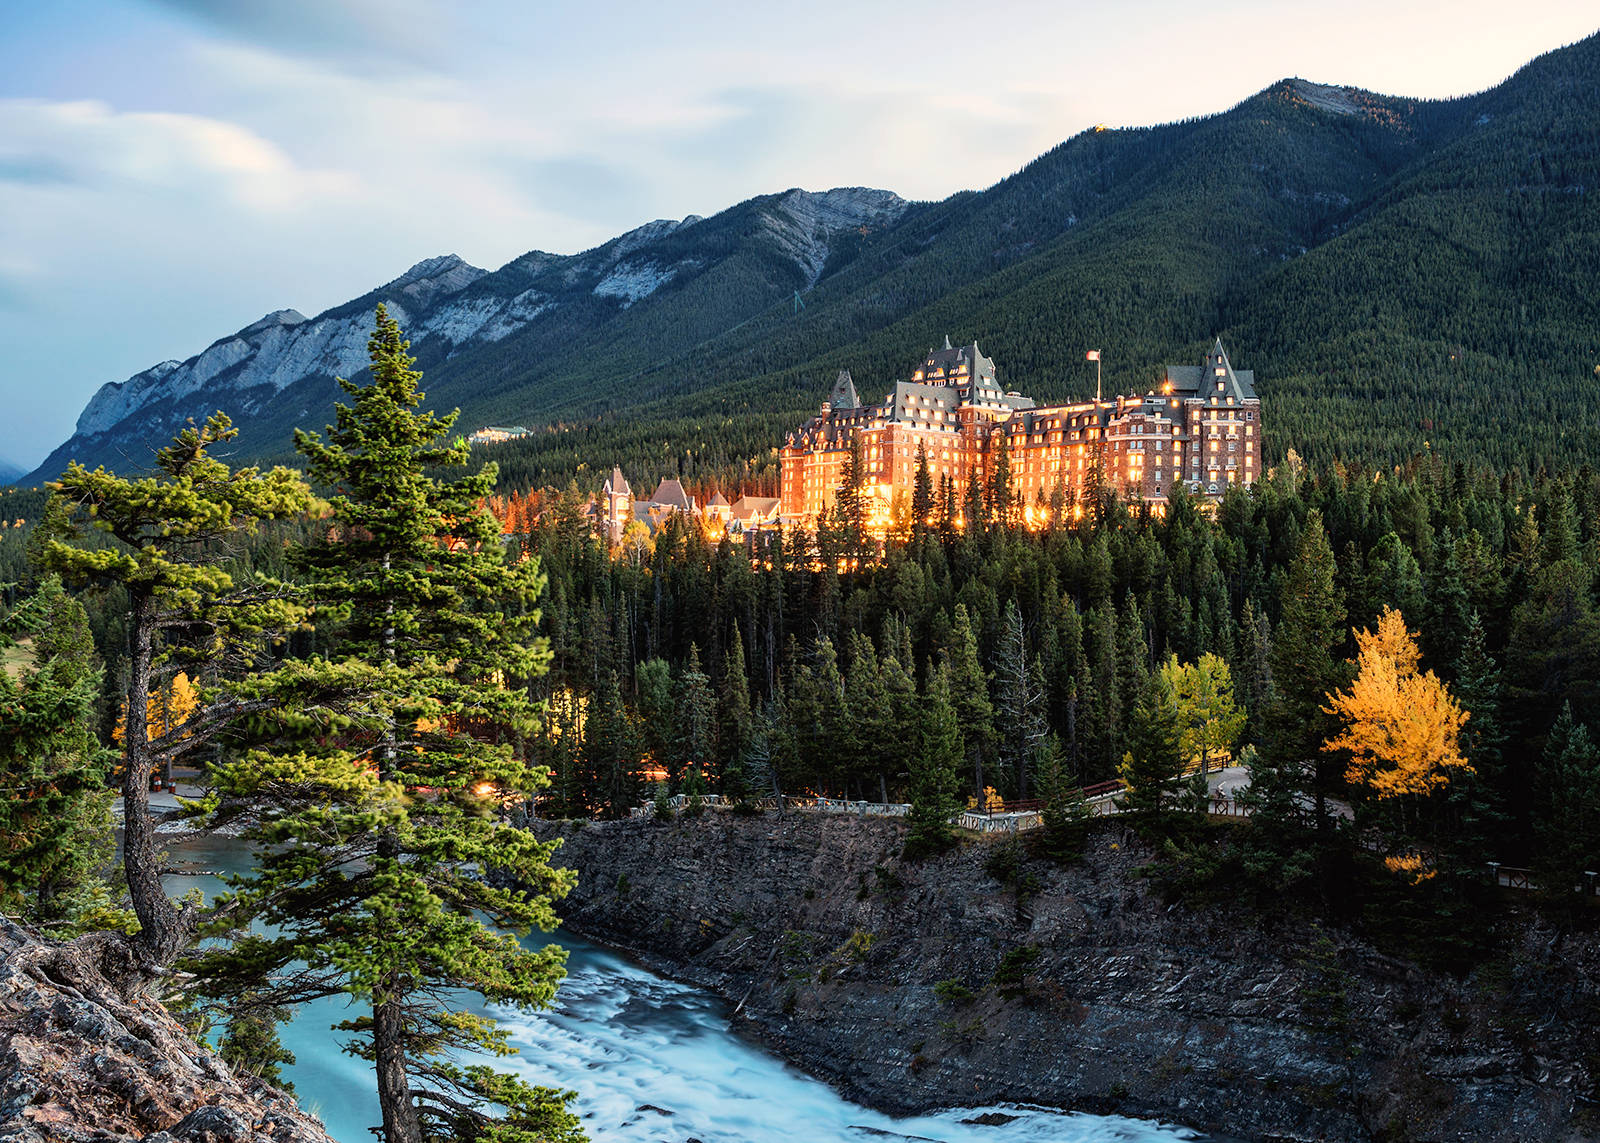 Built in 1888, the Fairmont Banff Springs Hotel, in Banff National Park, has a long and storied history.